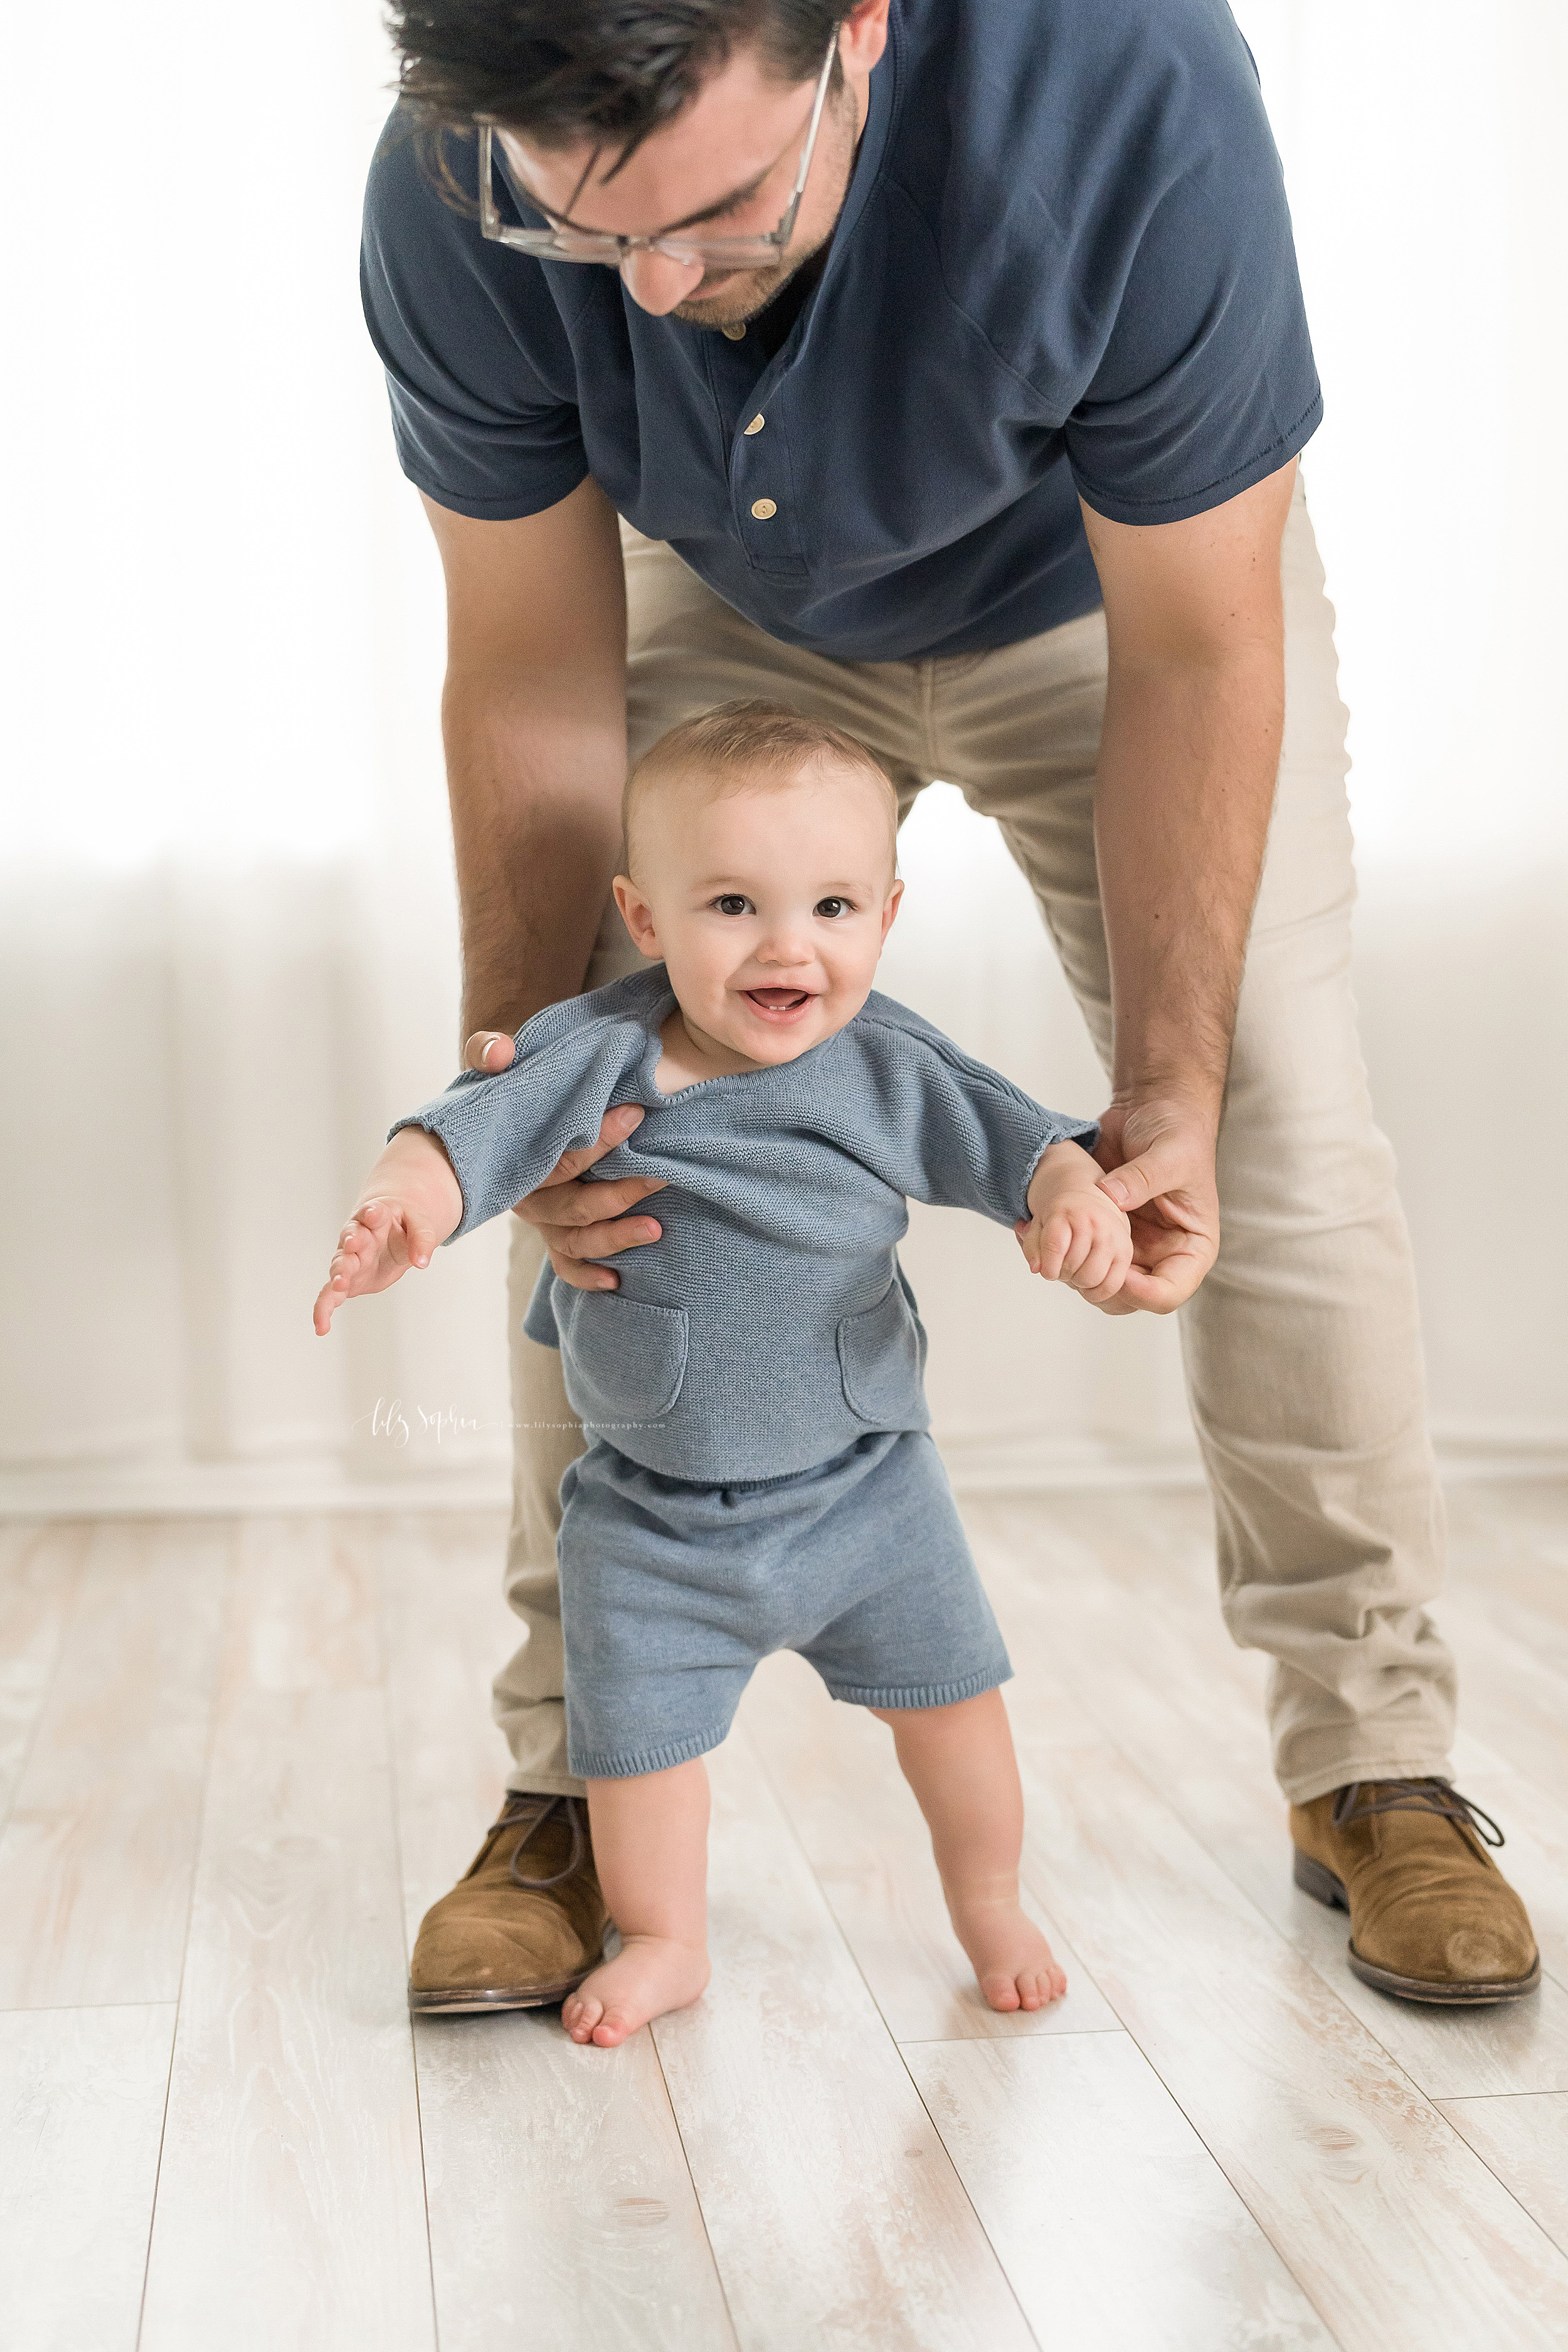 Photo of a dad and his father at the eight month old milestone with dad holding his son's hand and steadying him with his other hand as the son takes his first steps in a natural light Atlanta studio.